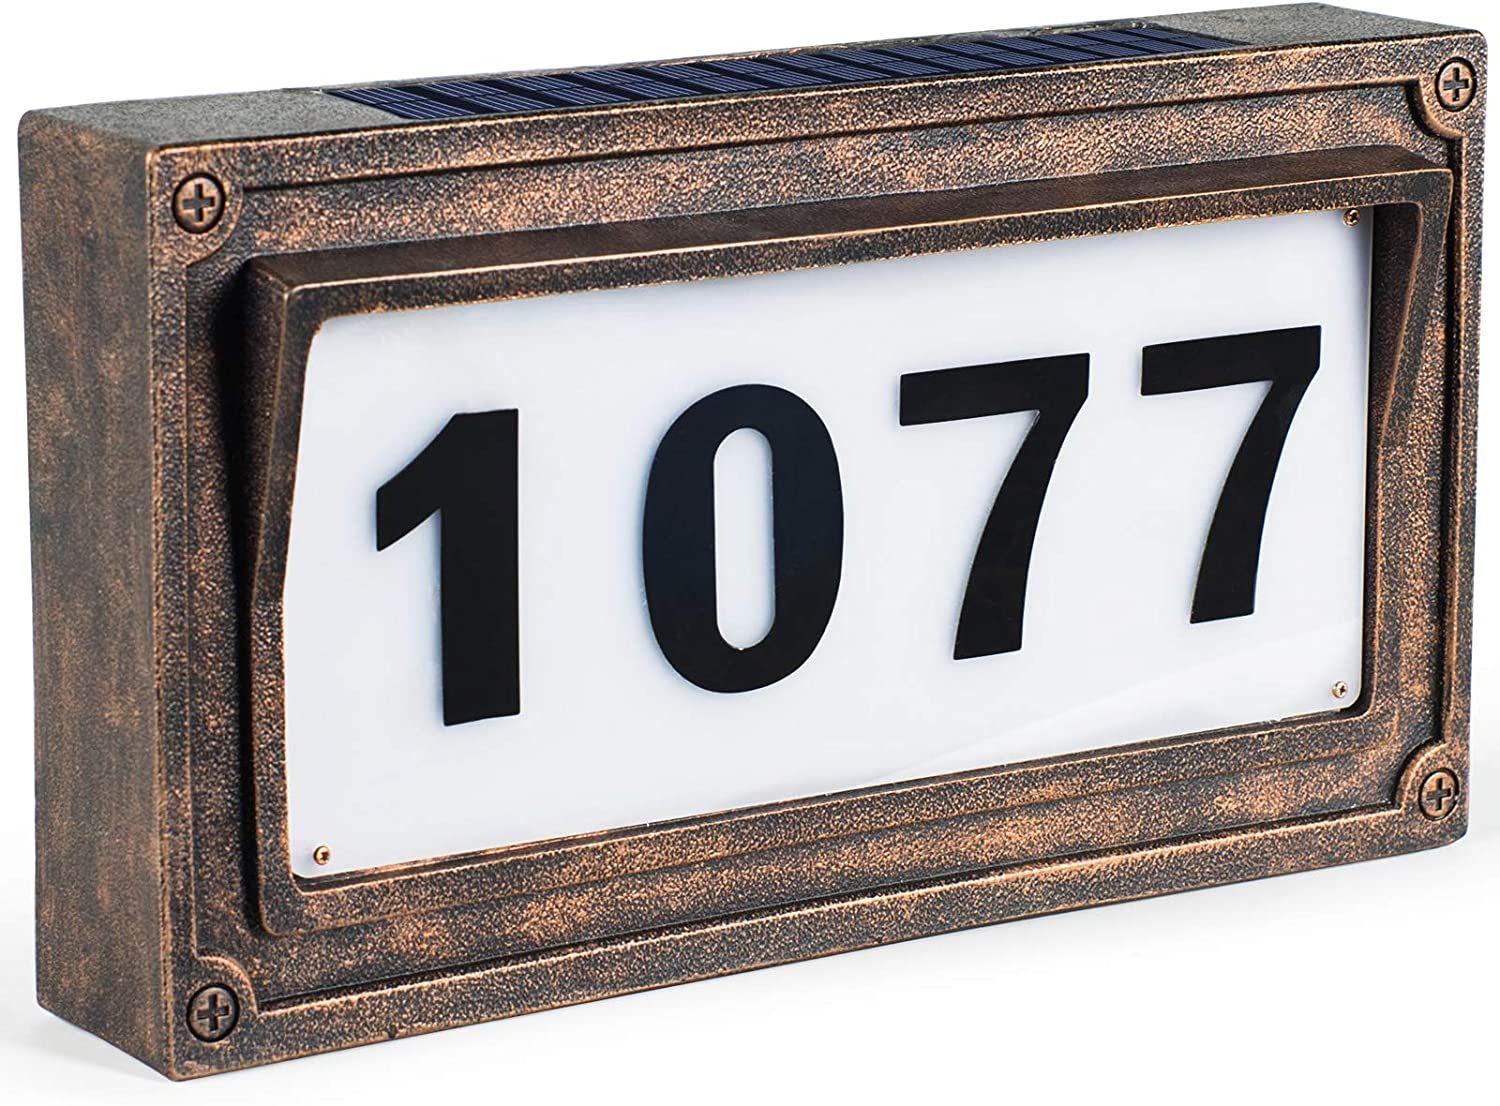 Solar House Number, Address Plaques for House, Street Signs Mailbox Numbers for Outside-Warm White Light